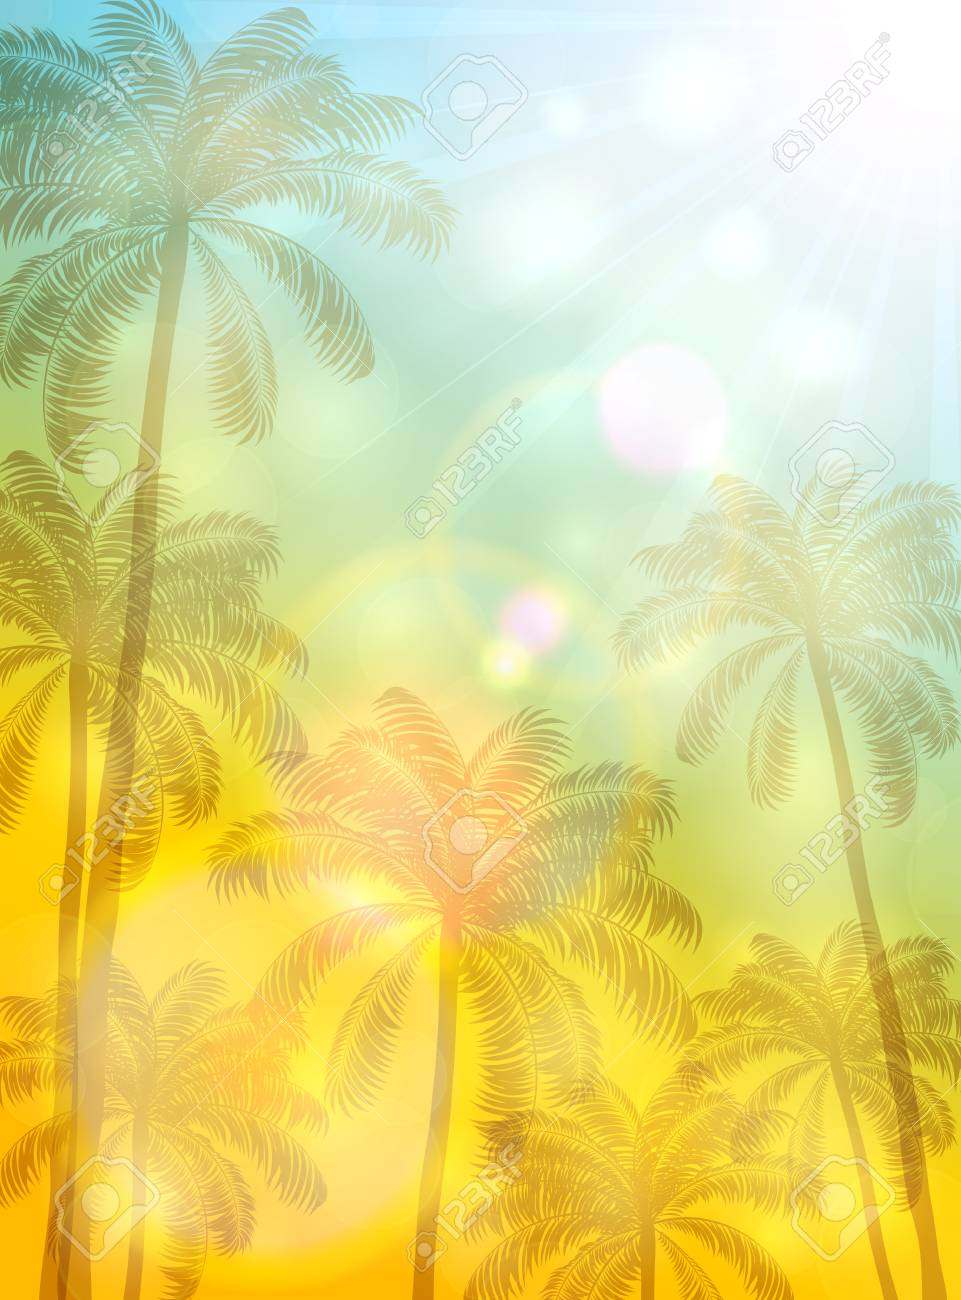 summer theme with palm trees and bright sun on yellow and blue